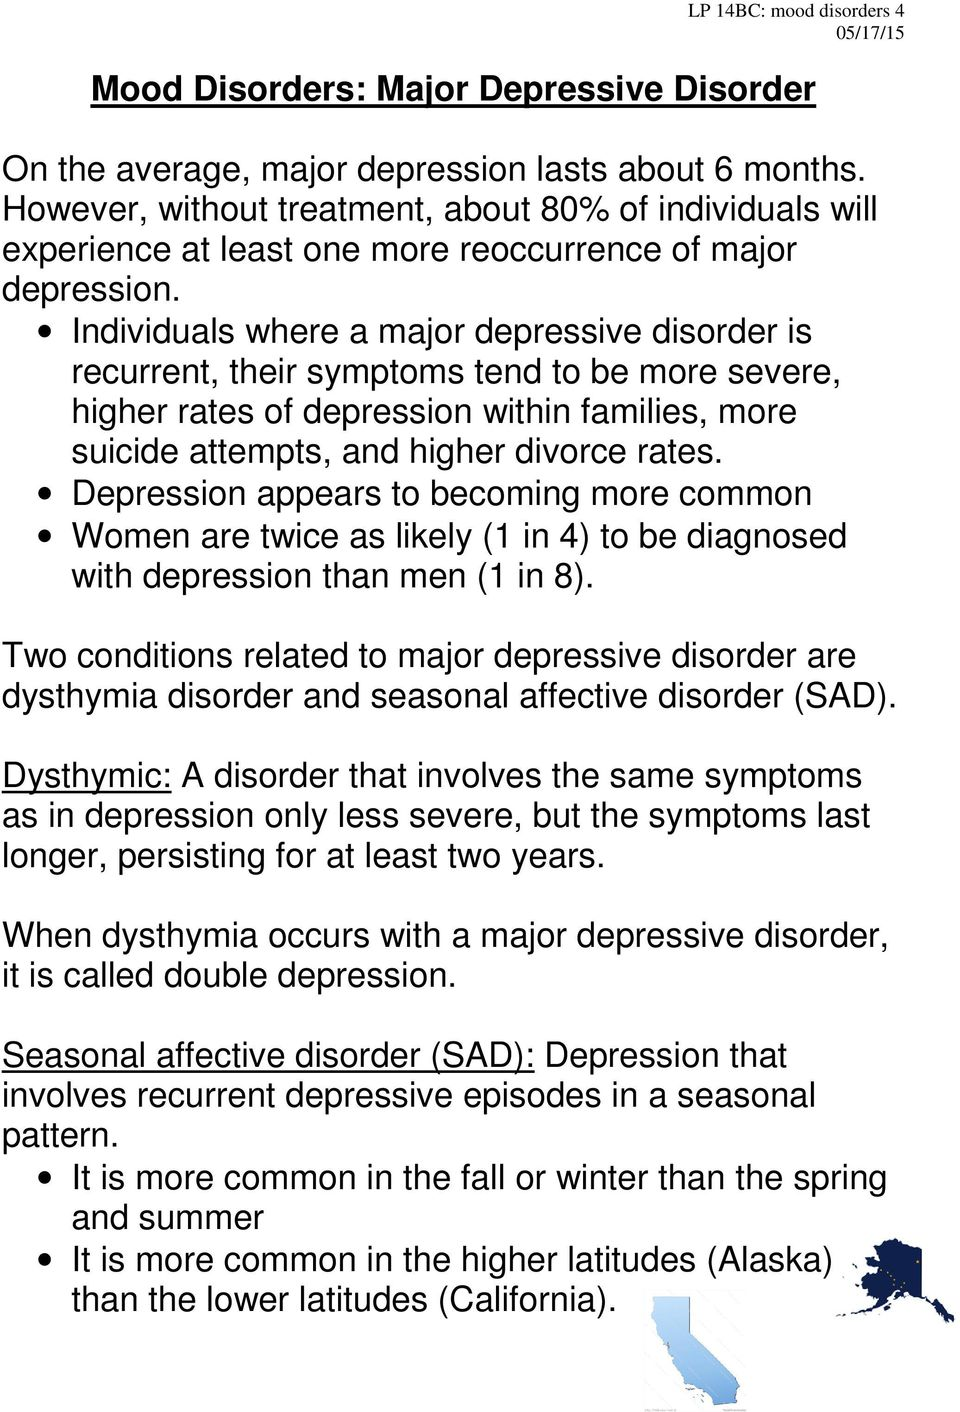 Individuals where a major depressive disorder is recurrent, their symptoms tend to be more severe, higher rates of depression within families, more suicide attempts, and higher divorce rates.